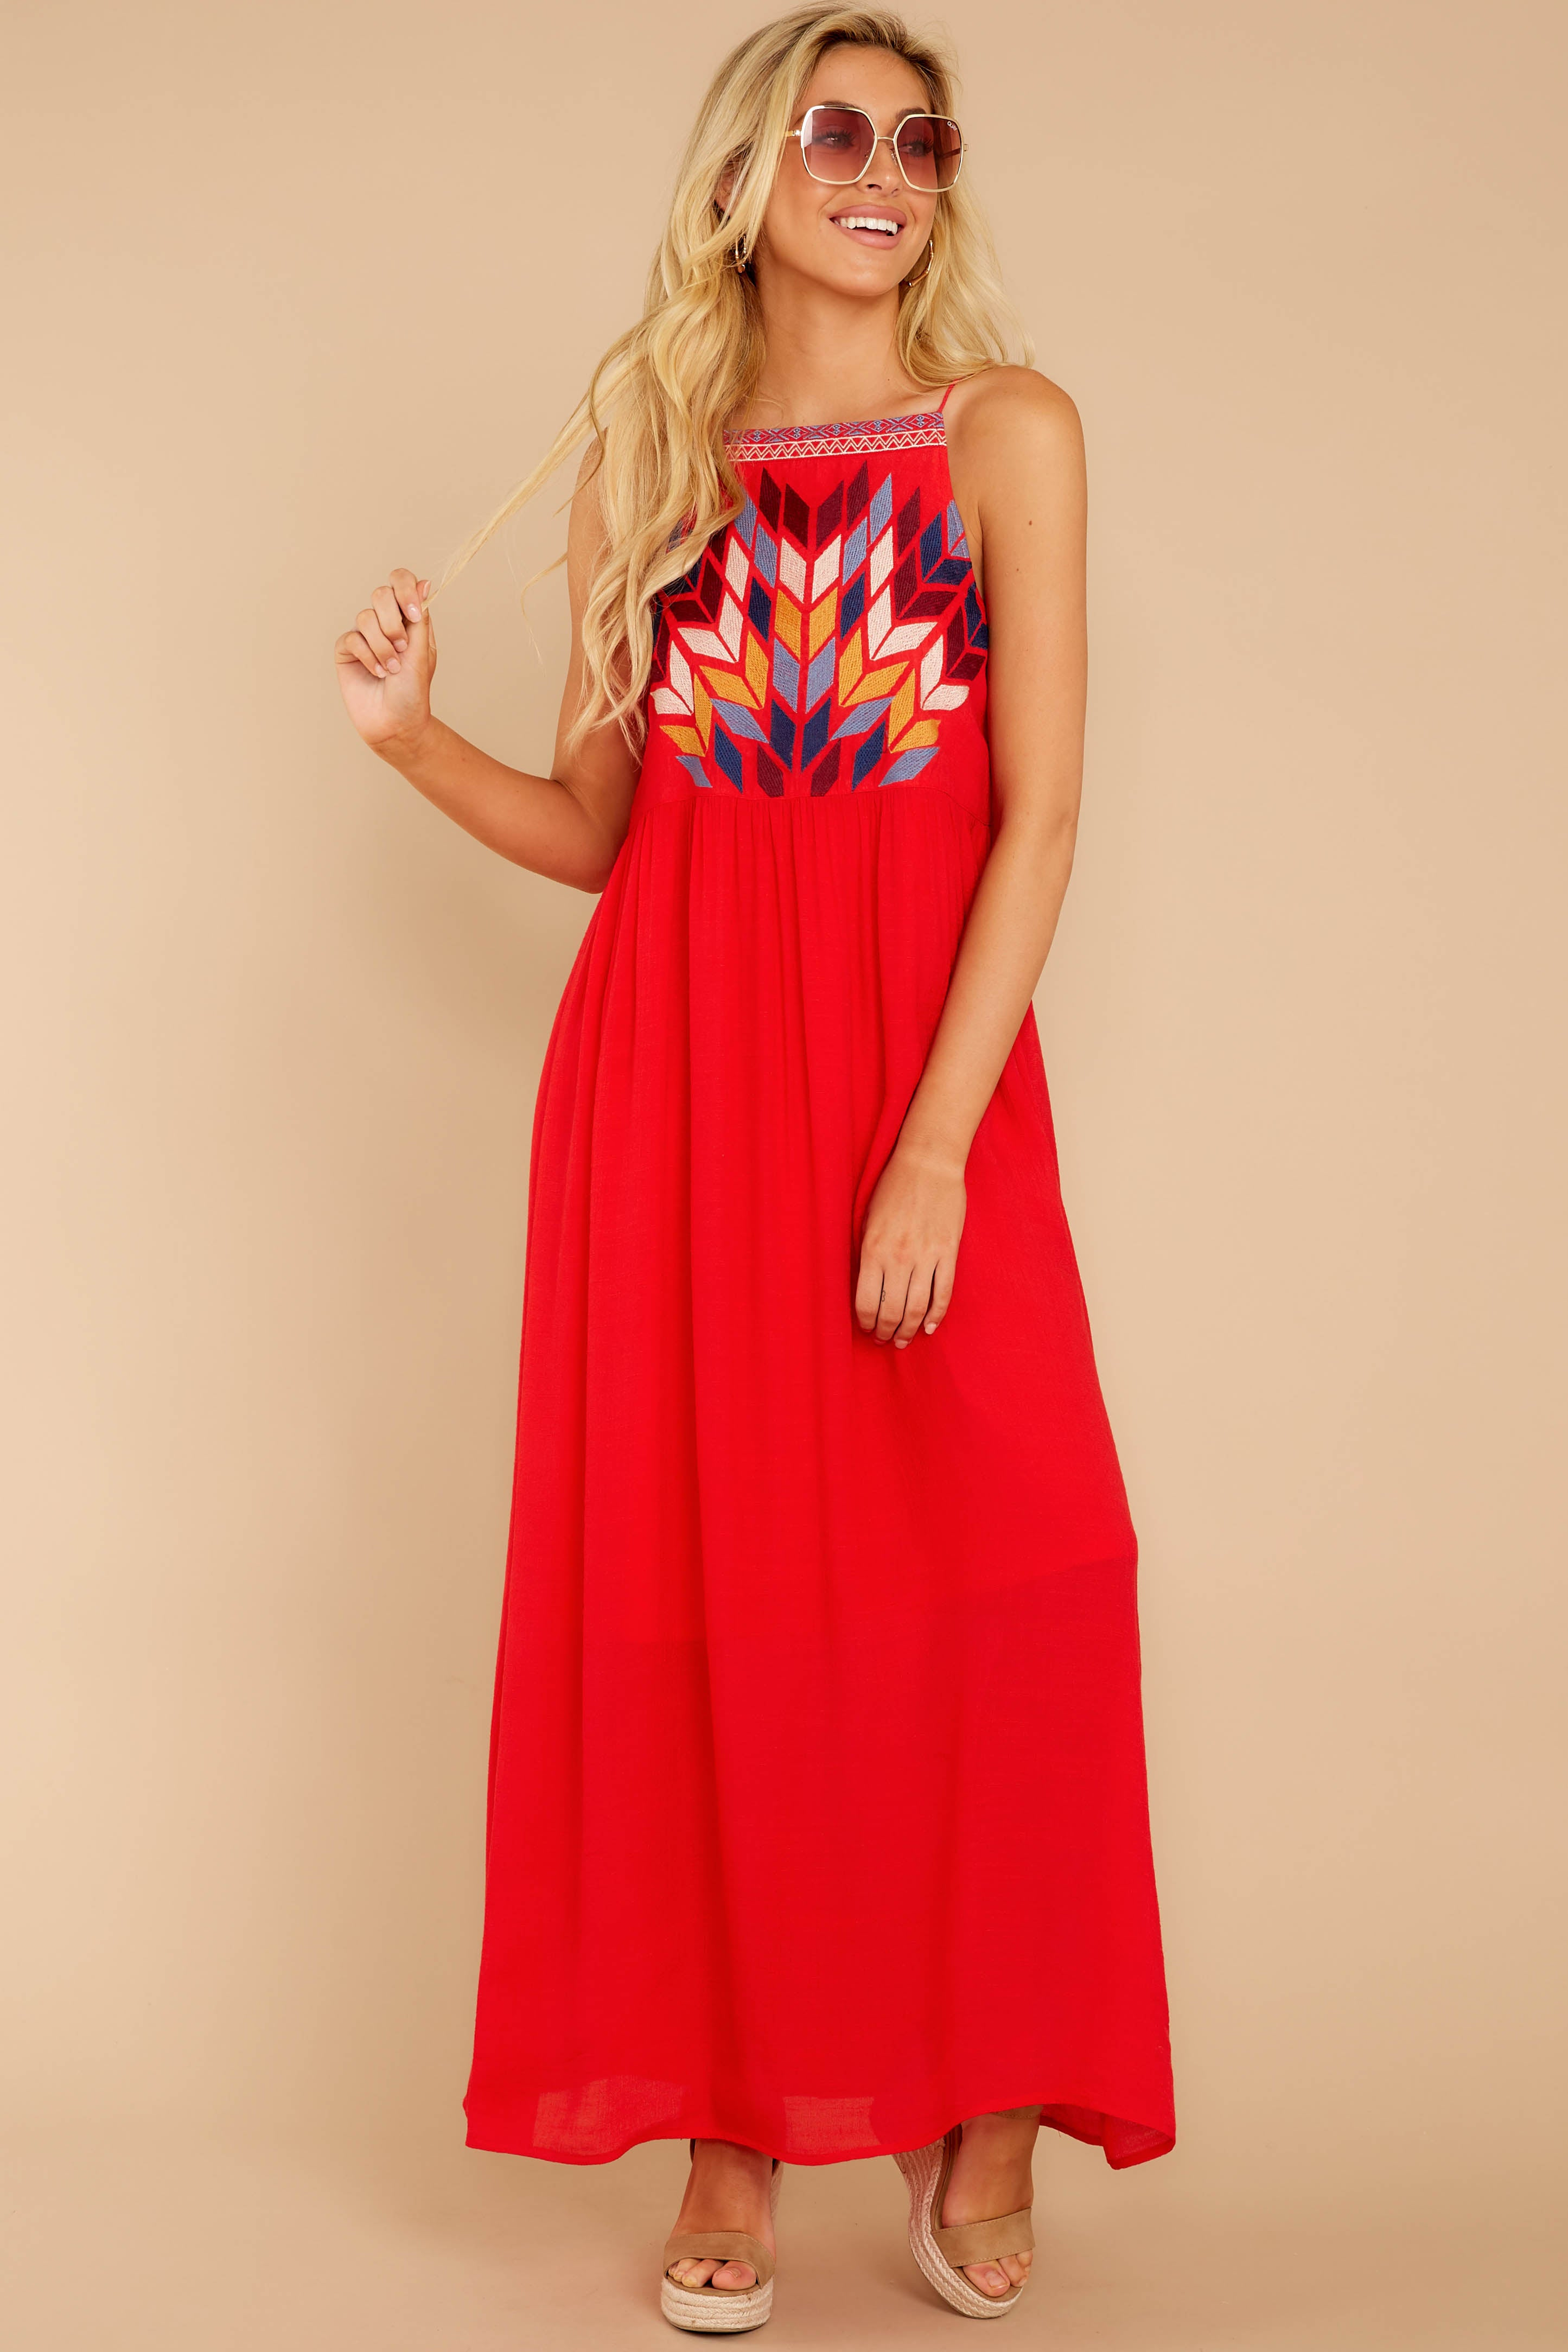 2 Kaleidoscope View Red Embroidered Maxi Dress at reddressboutique.com